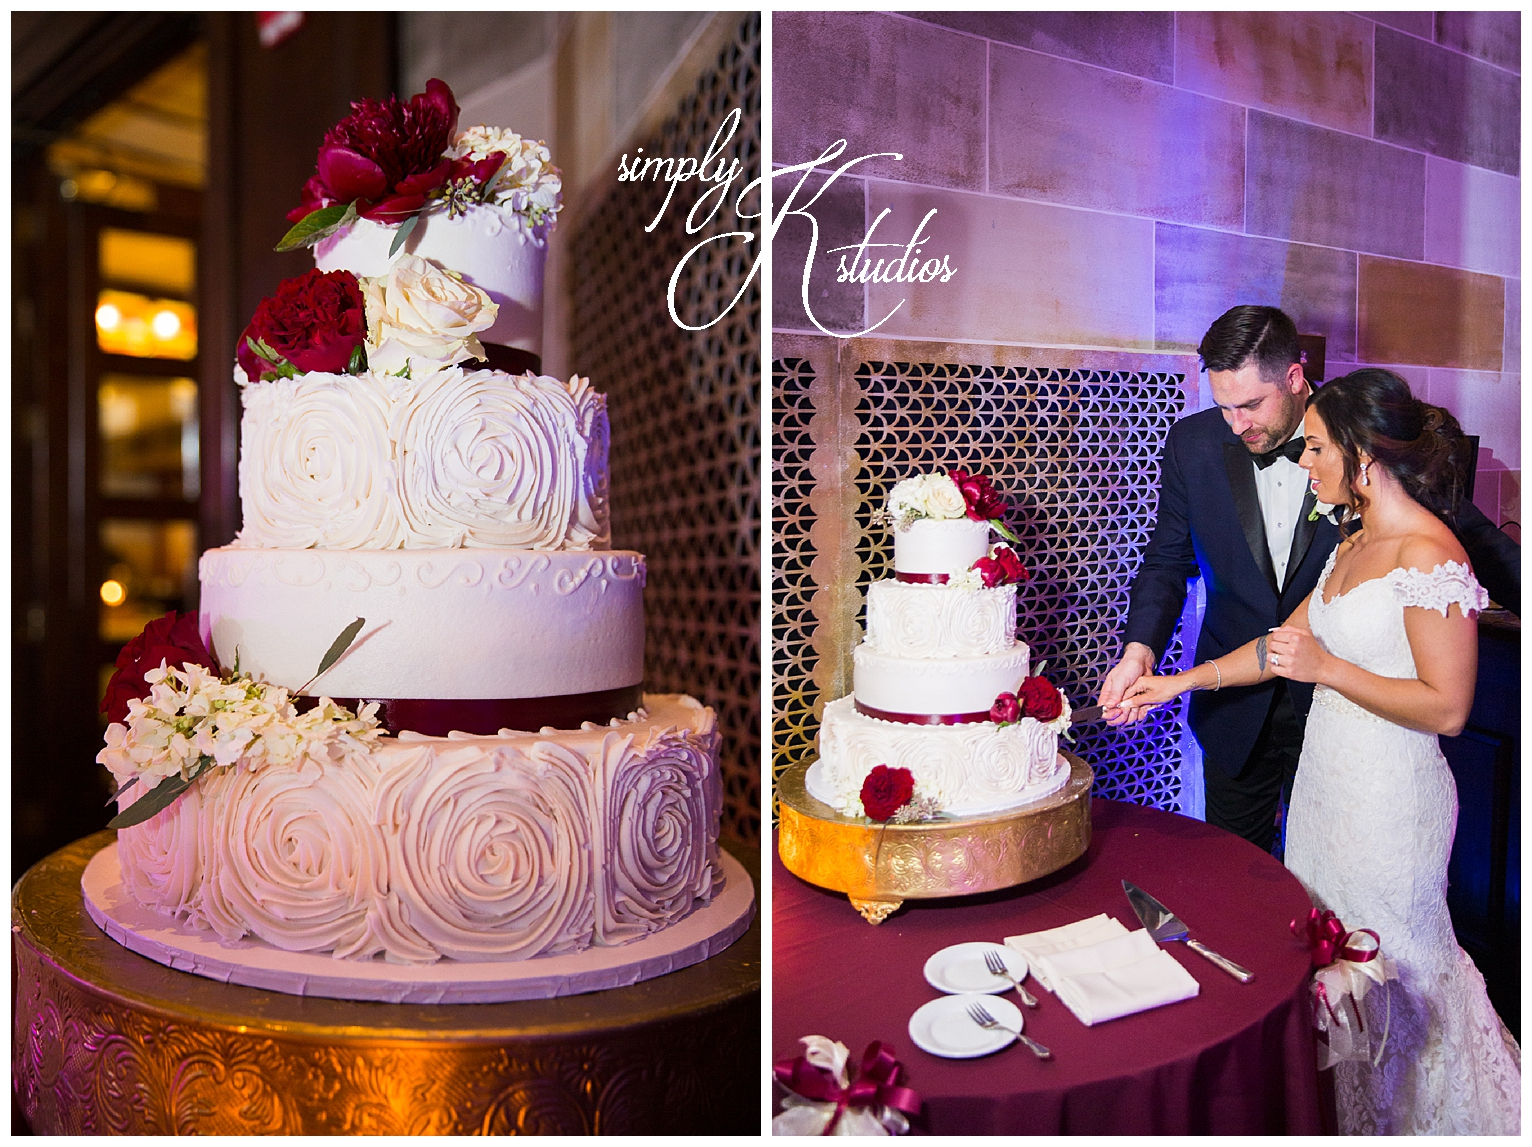 100 Wedding Cakes from Kims Cottage Confections.jpg